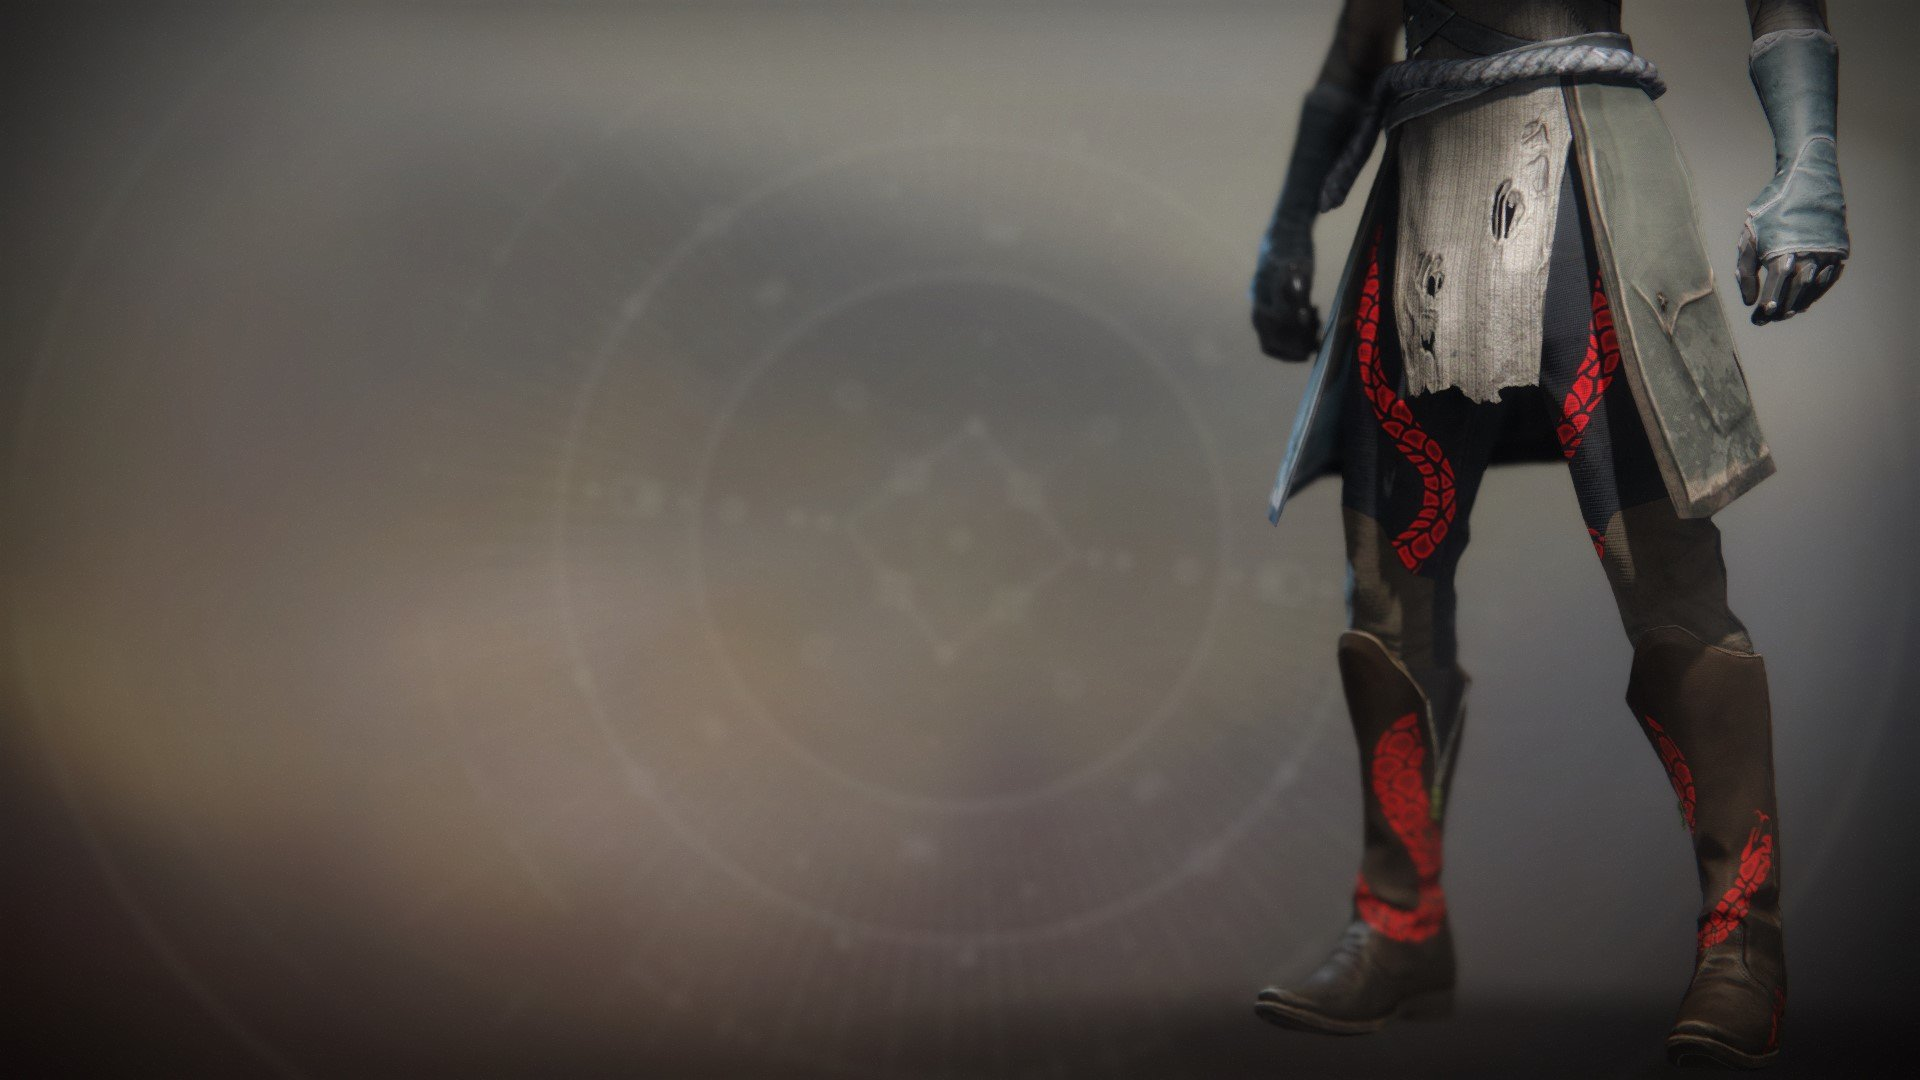 An in-game render of the Notorious Invader Boots.